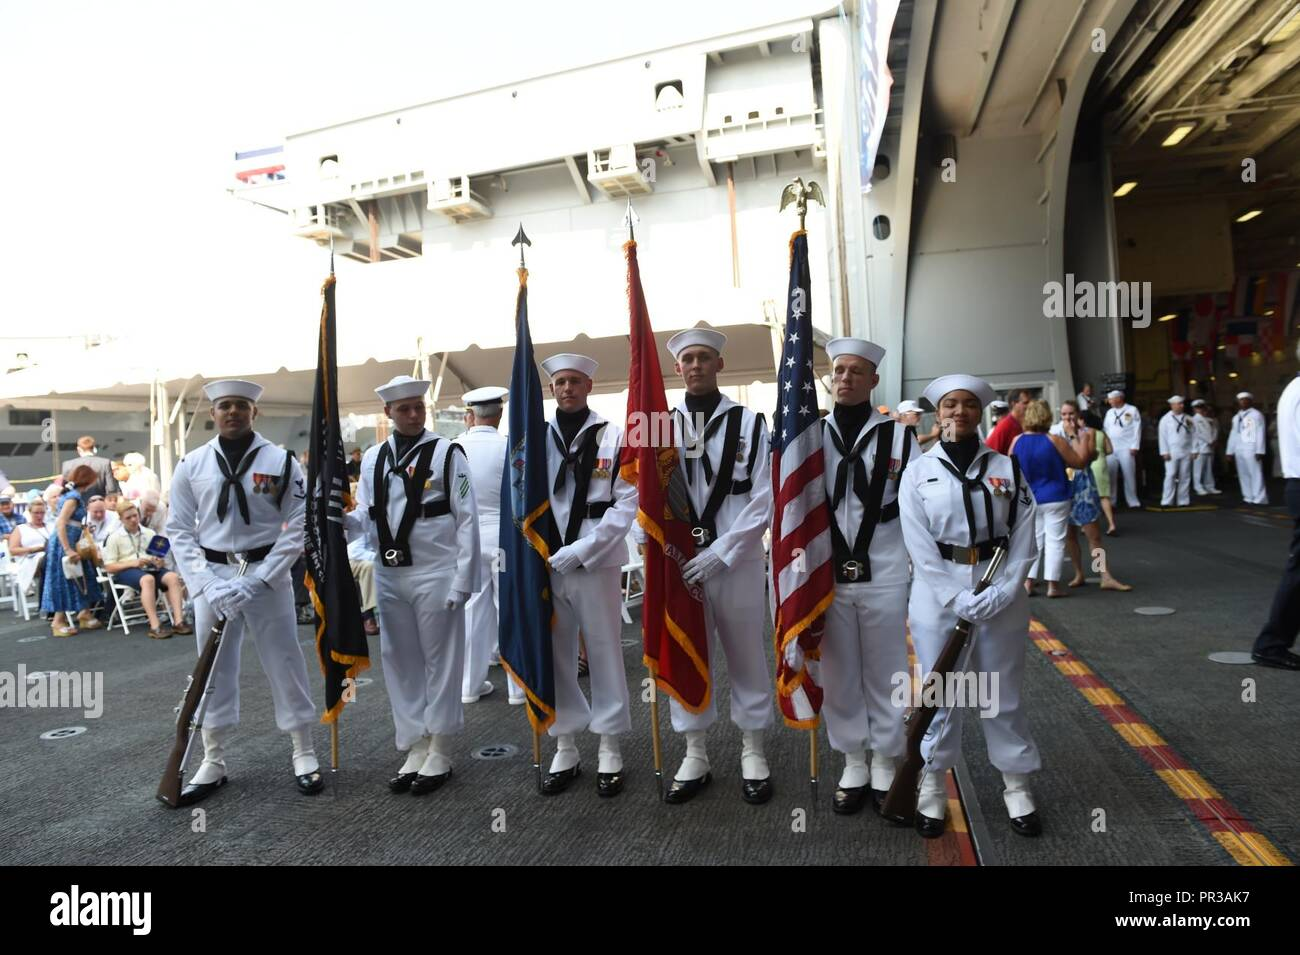 NORFOLK, Va. (July 22, 2017) -- USS Gerald R. Ford's (CVN 78) color guard poses for a group photo prior to the ship's commissioning ceremony. Ford is the lead ship of the Ford-class aircraft carriers, and the first new U.S. aircraft carrier design in 40 years. - Stock Image